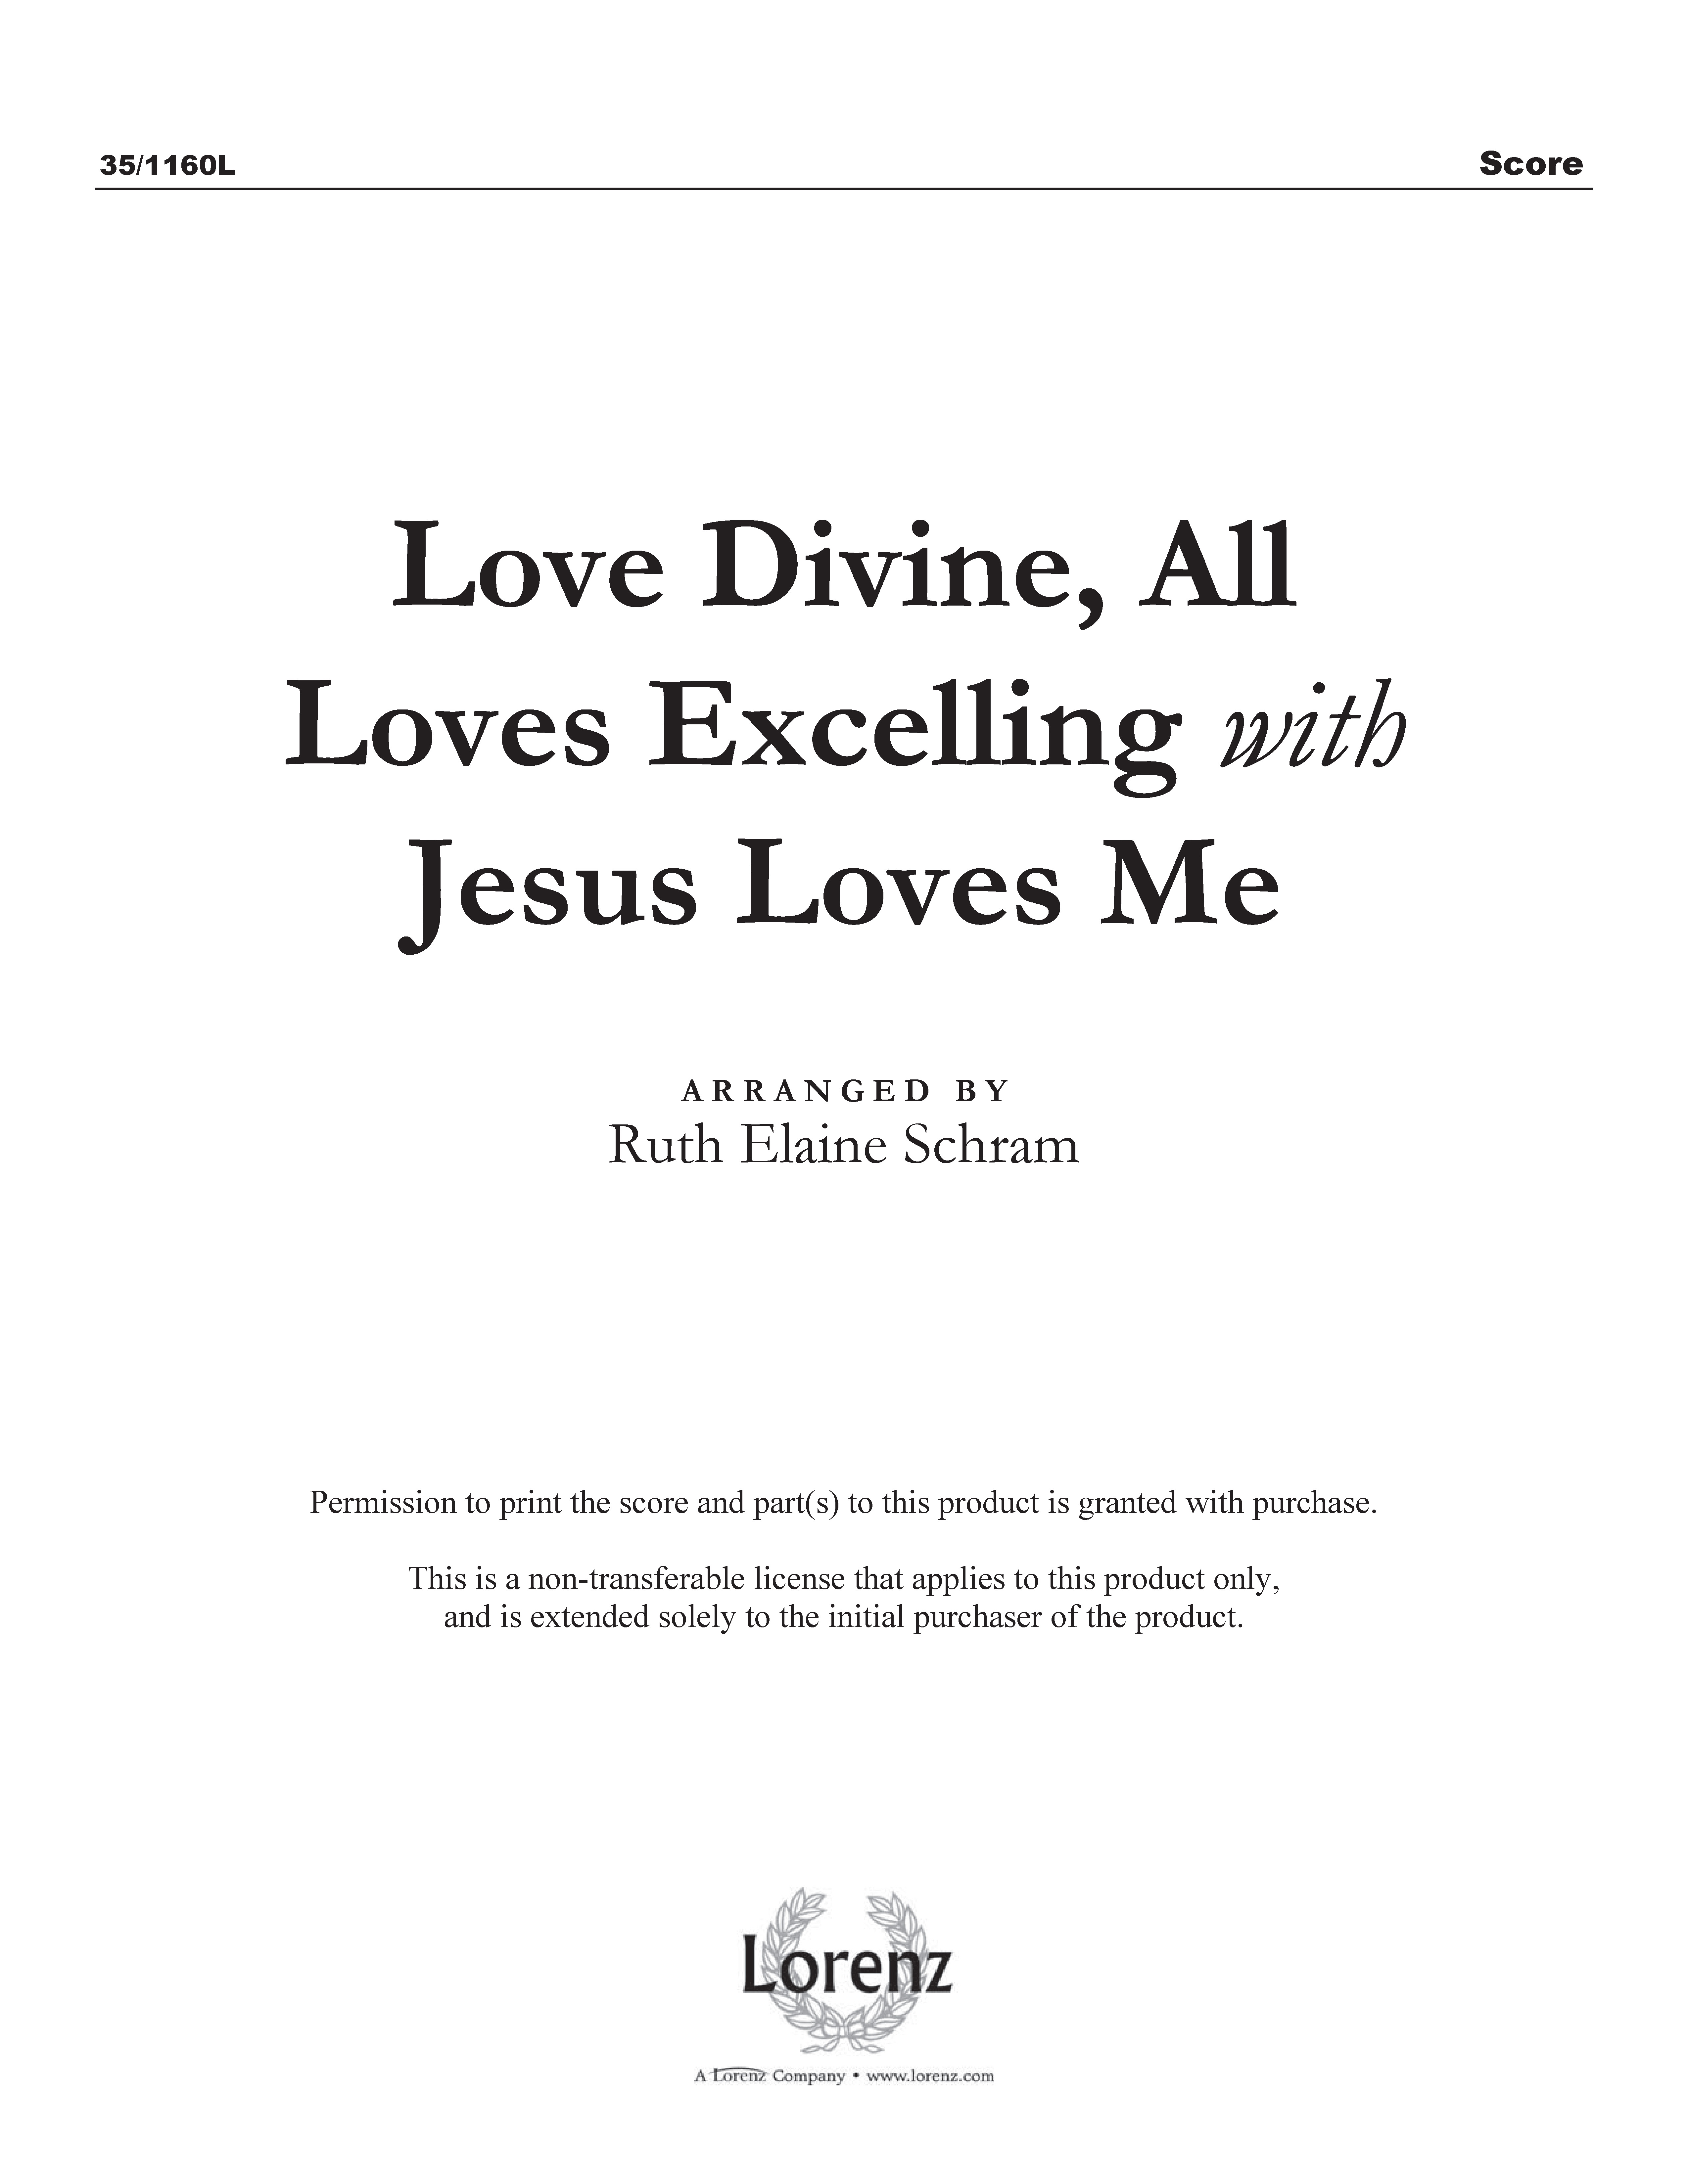 Love Divine, All Loves Excelling with Jesus Loves Me (Digital Delivery)